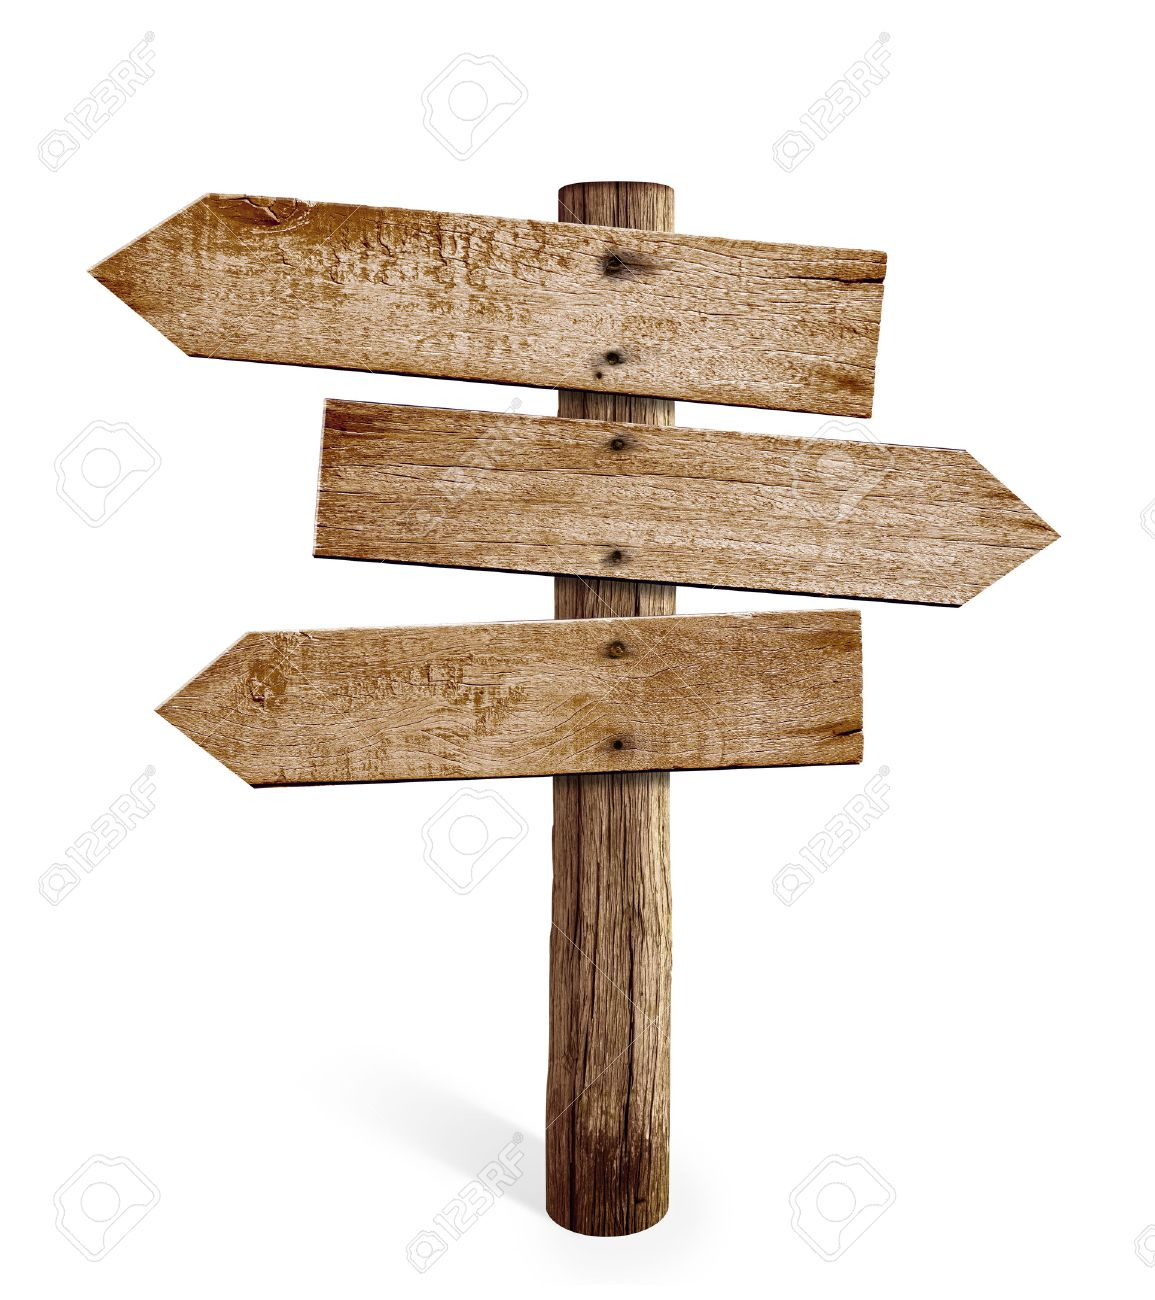 wooden arrow sign post or road signpost isolated stock photo